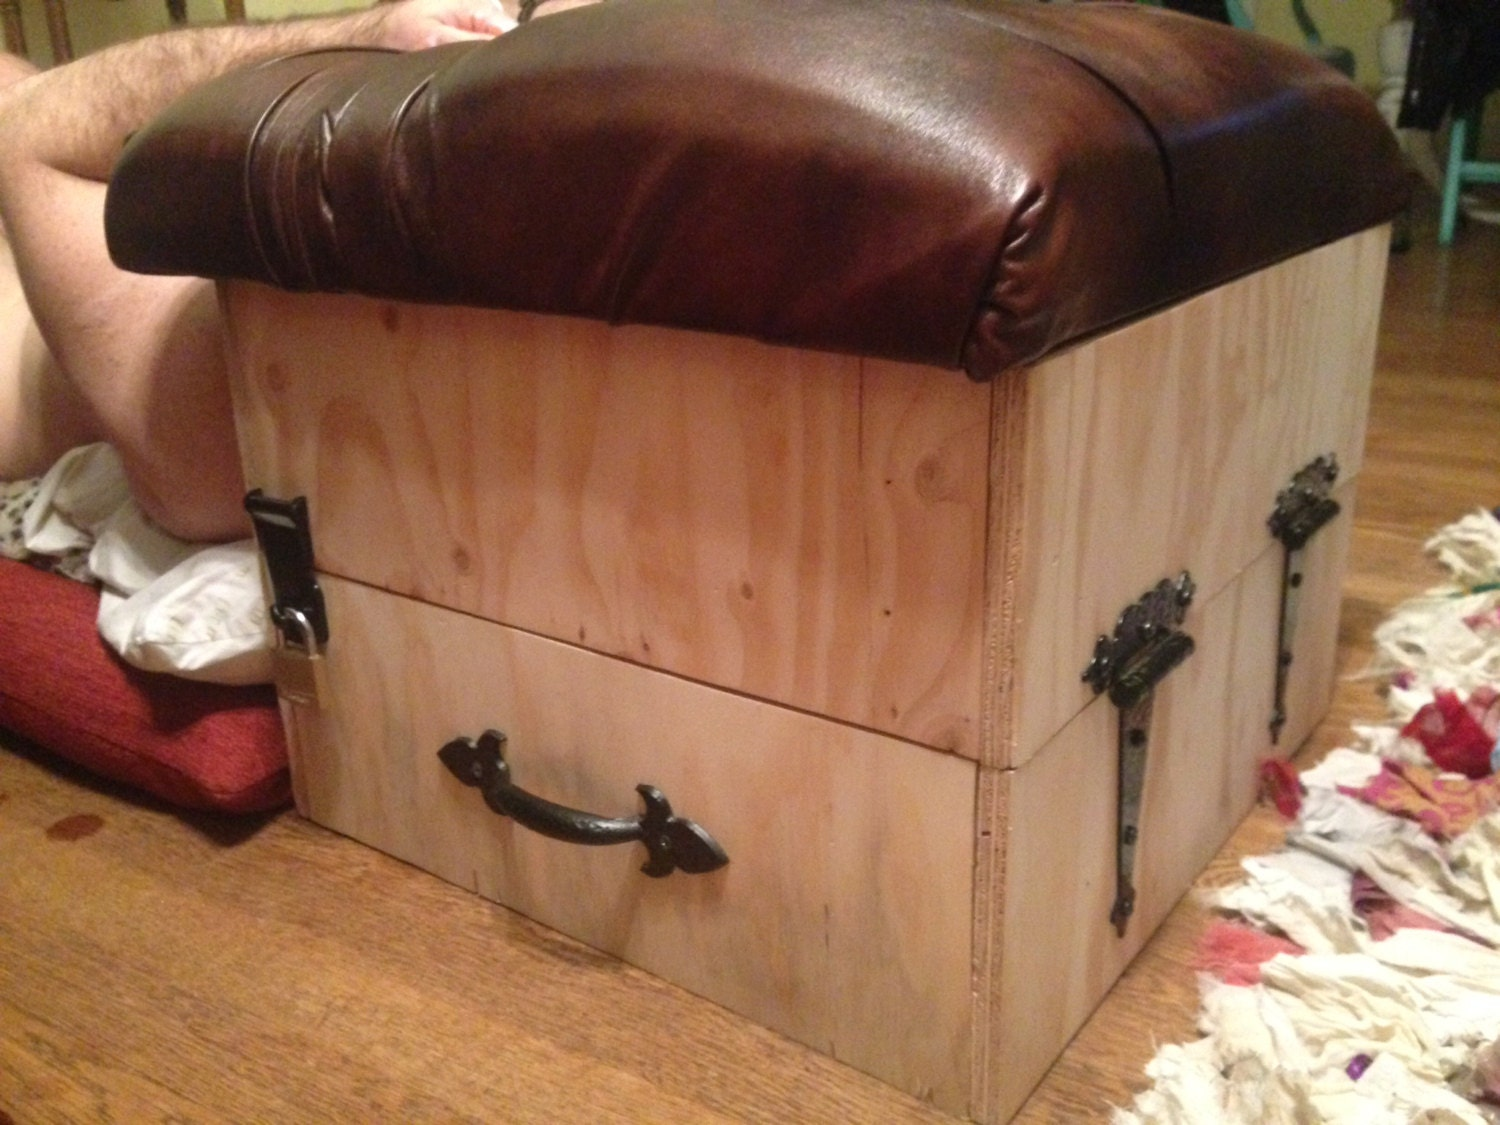 Custom Smother and Facesitting Box that is Fully by